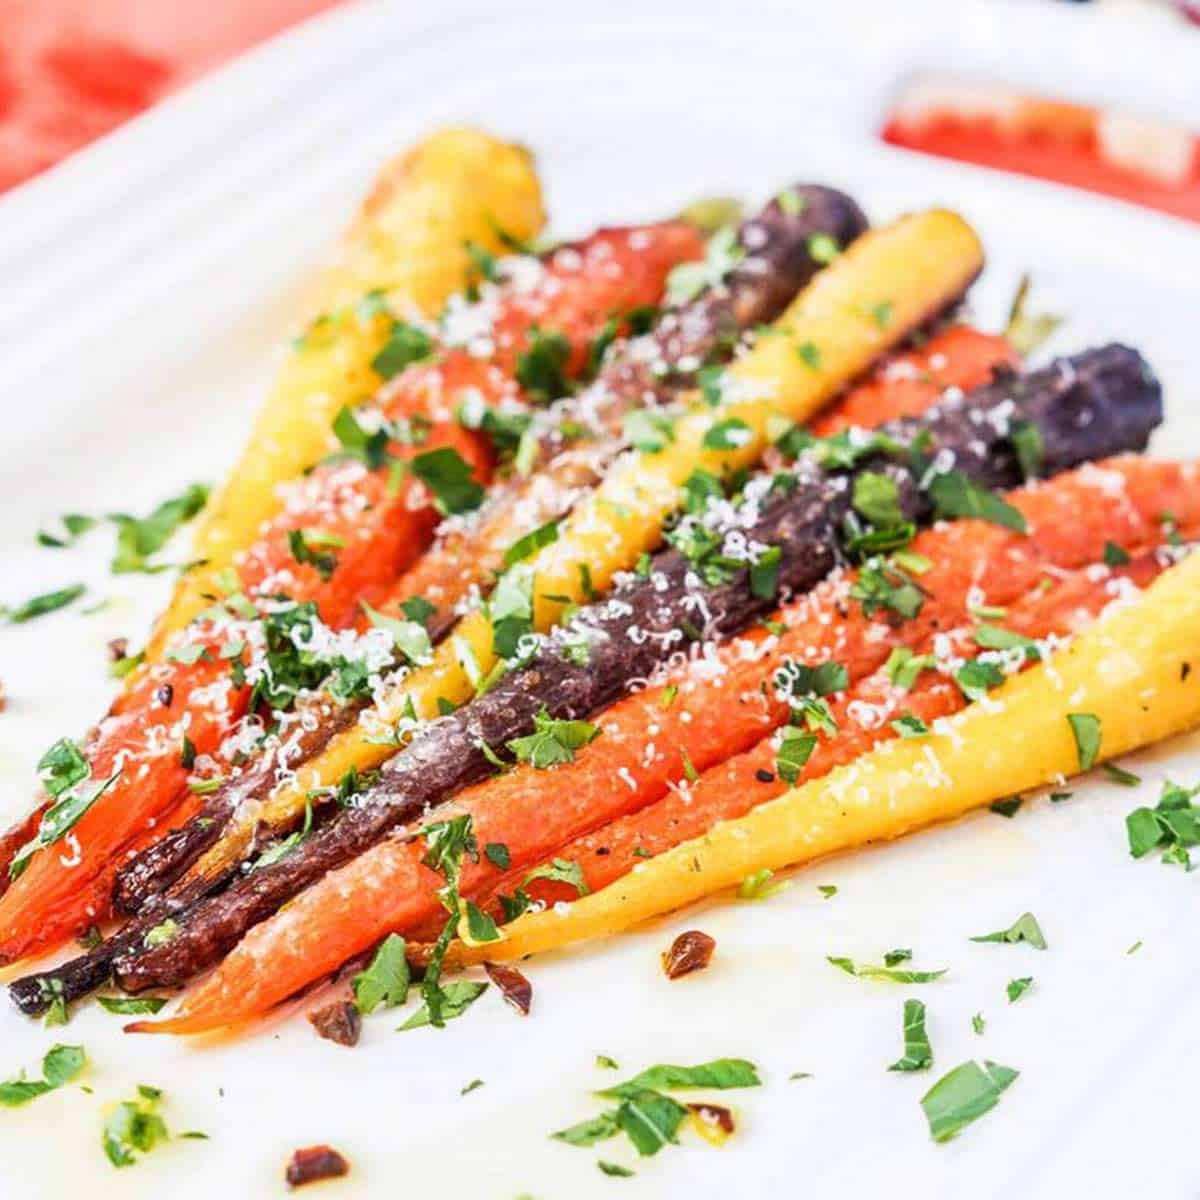 Garlic parmesan roasted carrots on a white plate for Easter side dishes